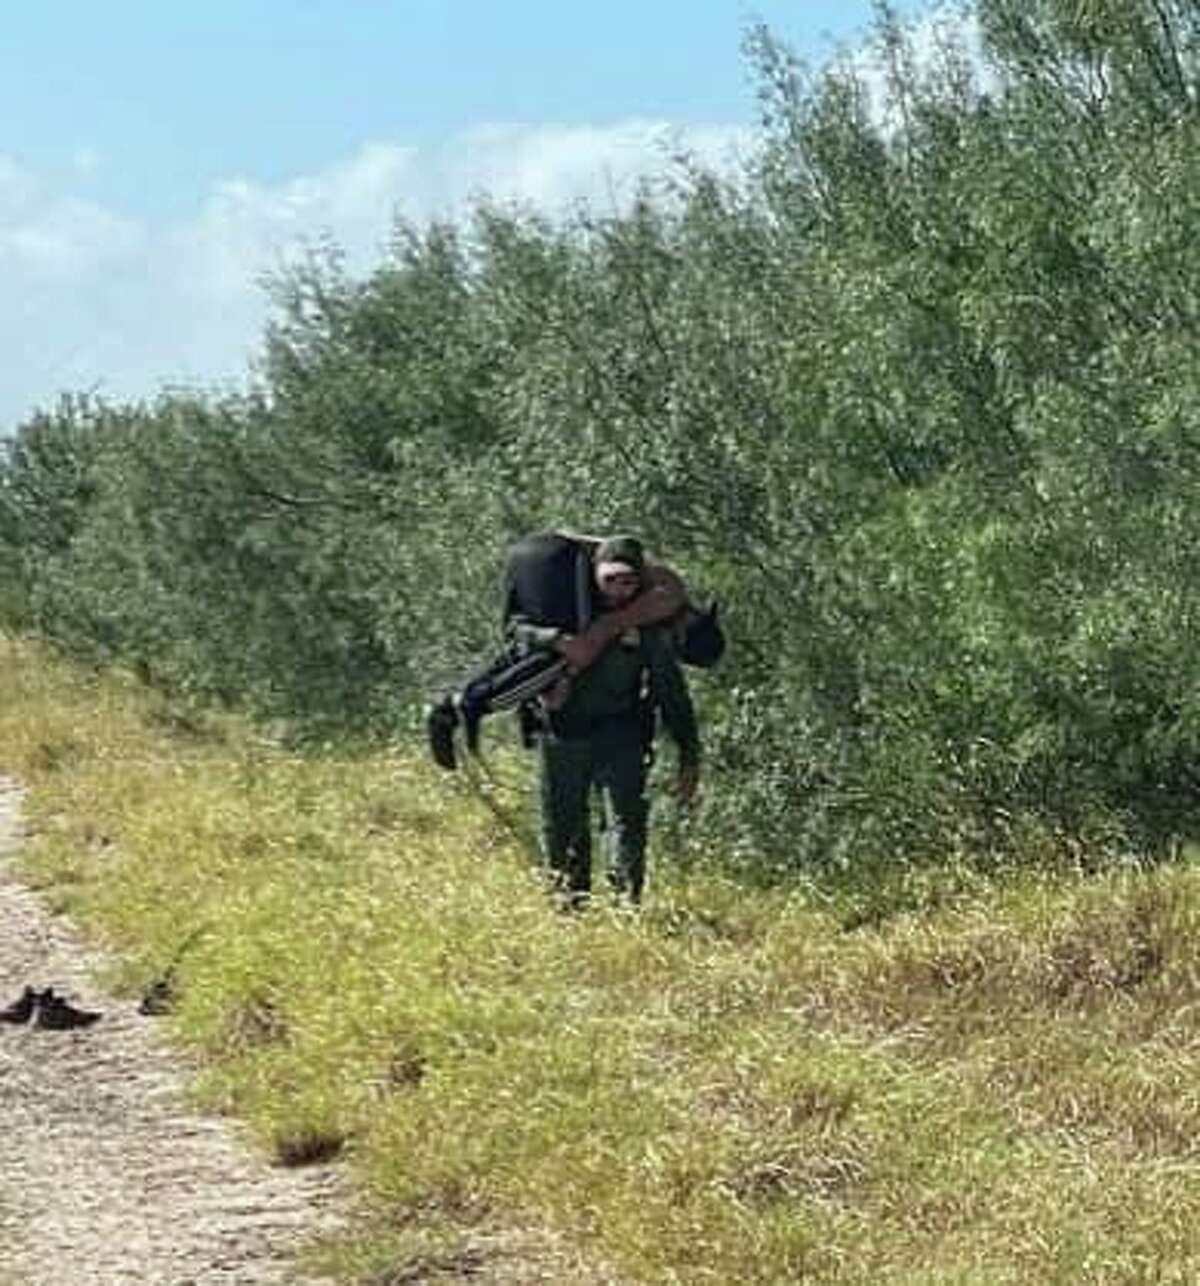 An 18-year-old Mexican national was discovered in need of medical attention near Hebbronville recently.